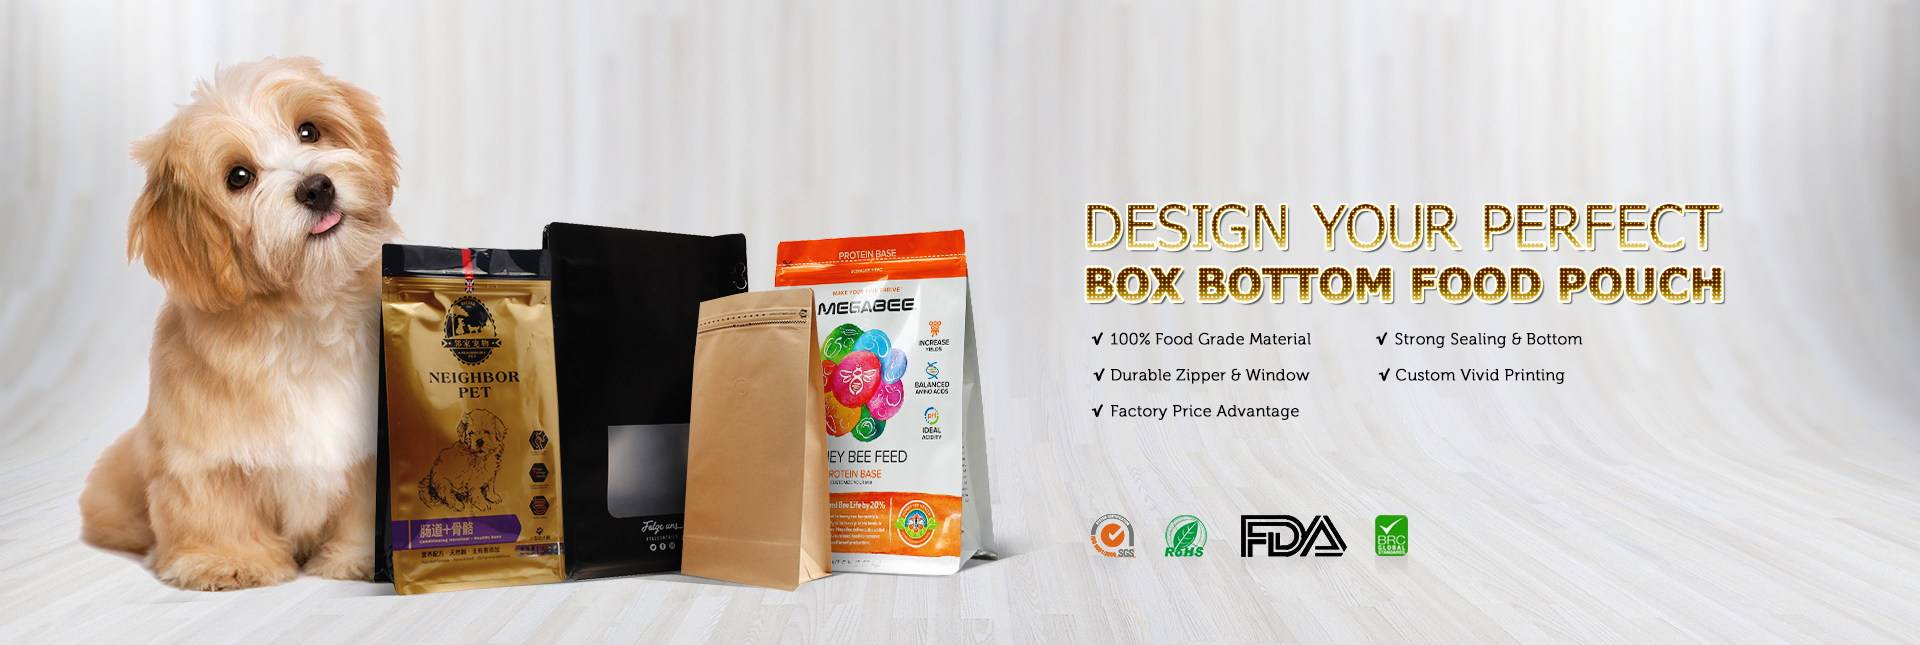 Box Bottom Food Pouch